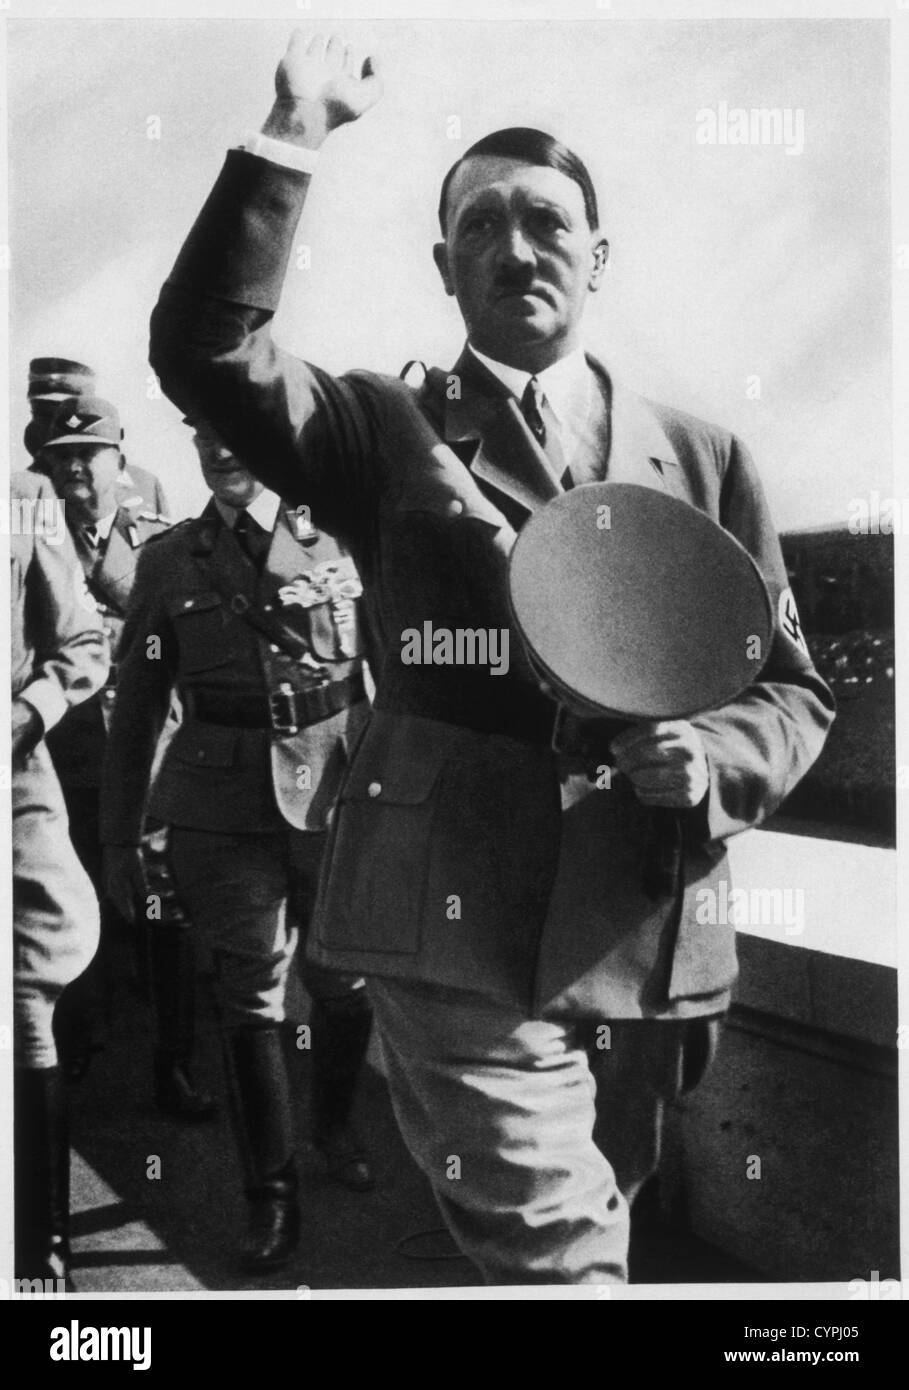 Adolf Hitler at Zeppelin Field During the Reichsparteitag, Nuremberg, Germany, 1935 - Stock Image